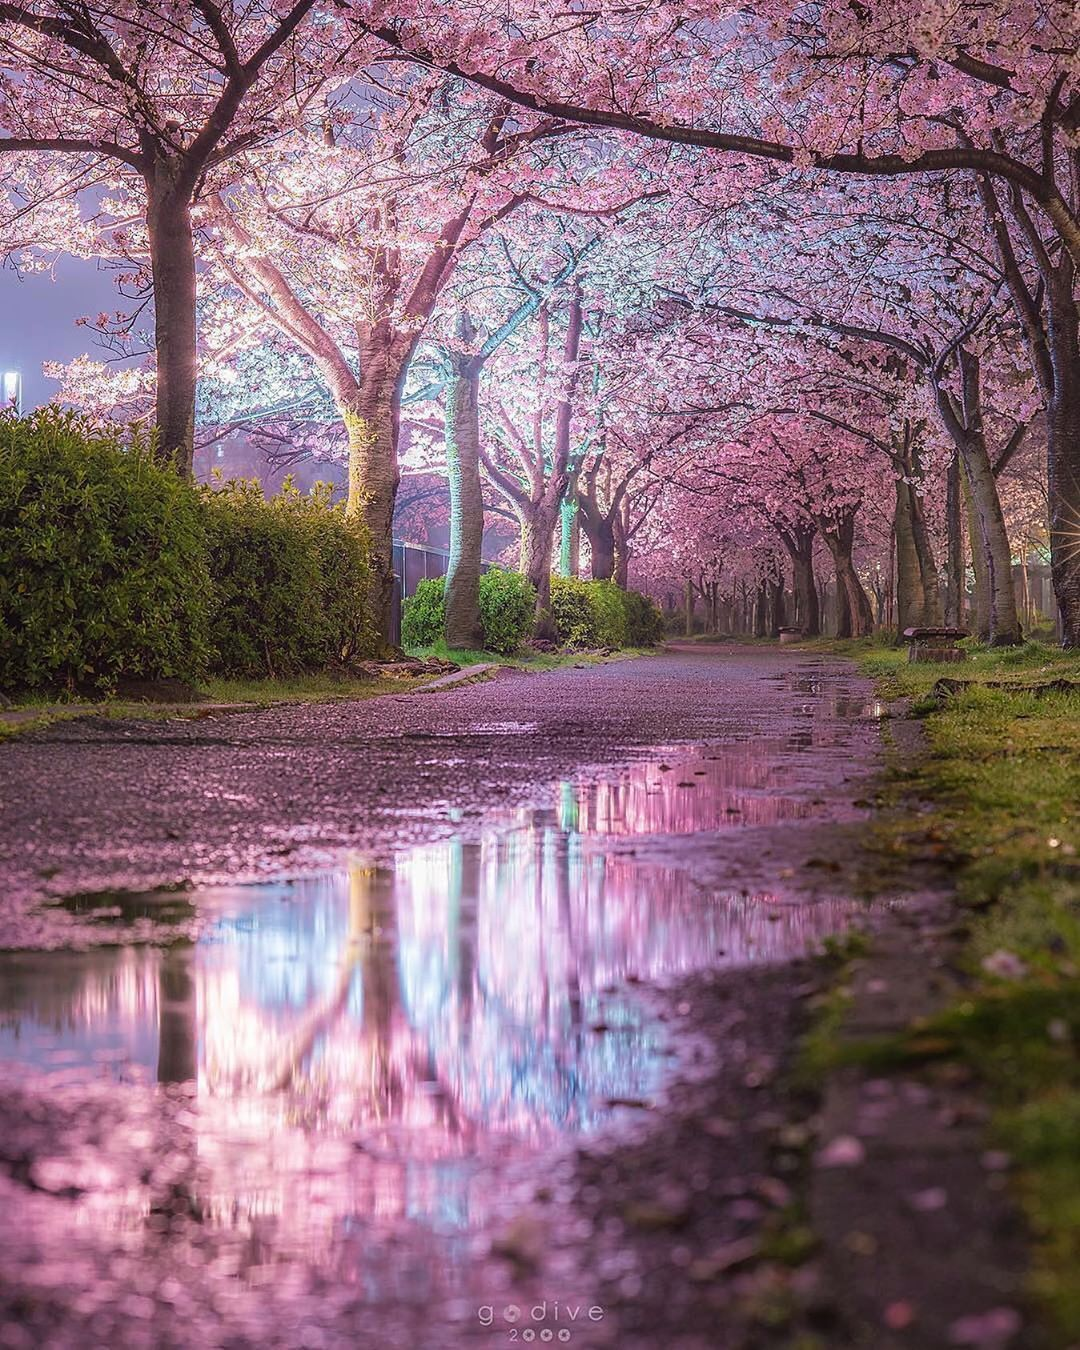 Beautiful Shot In Japan By Godive2000 Pics Nature Photography Landscape Photography Cherry Blossom Japan